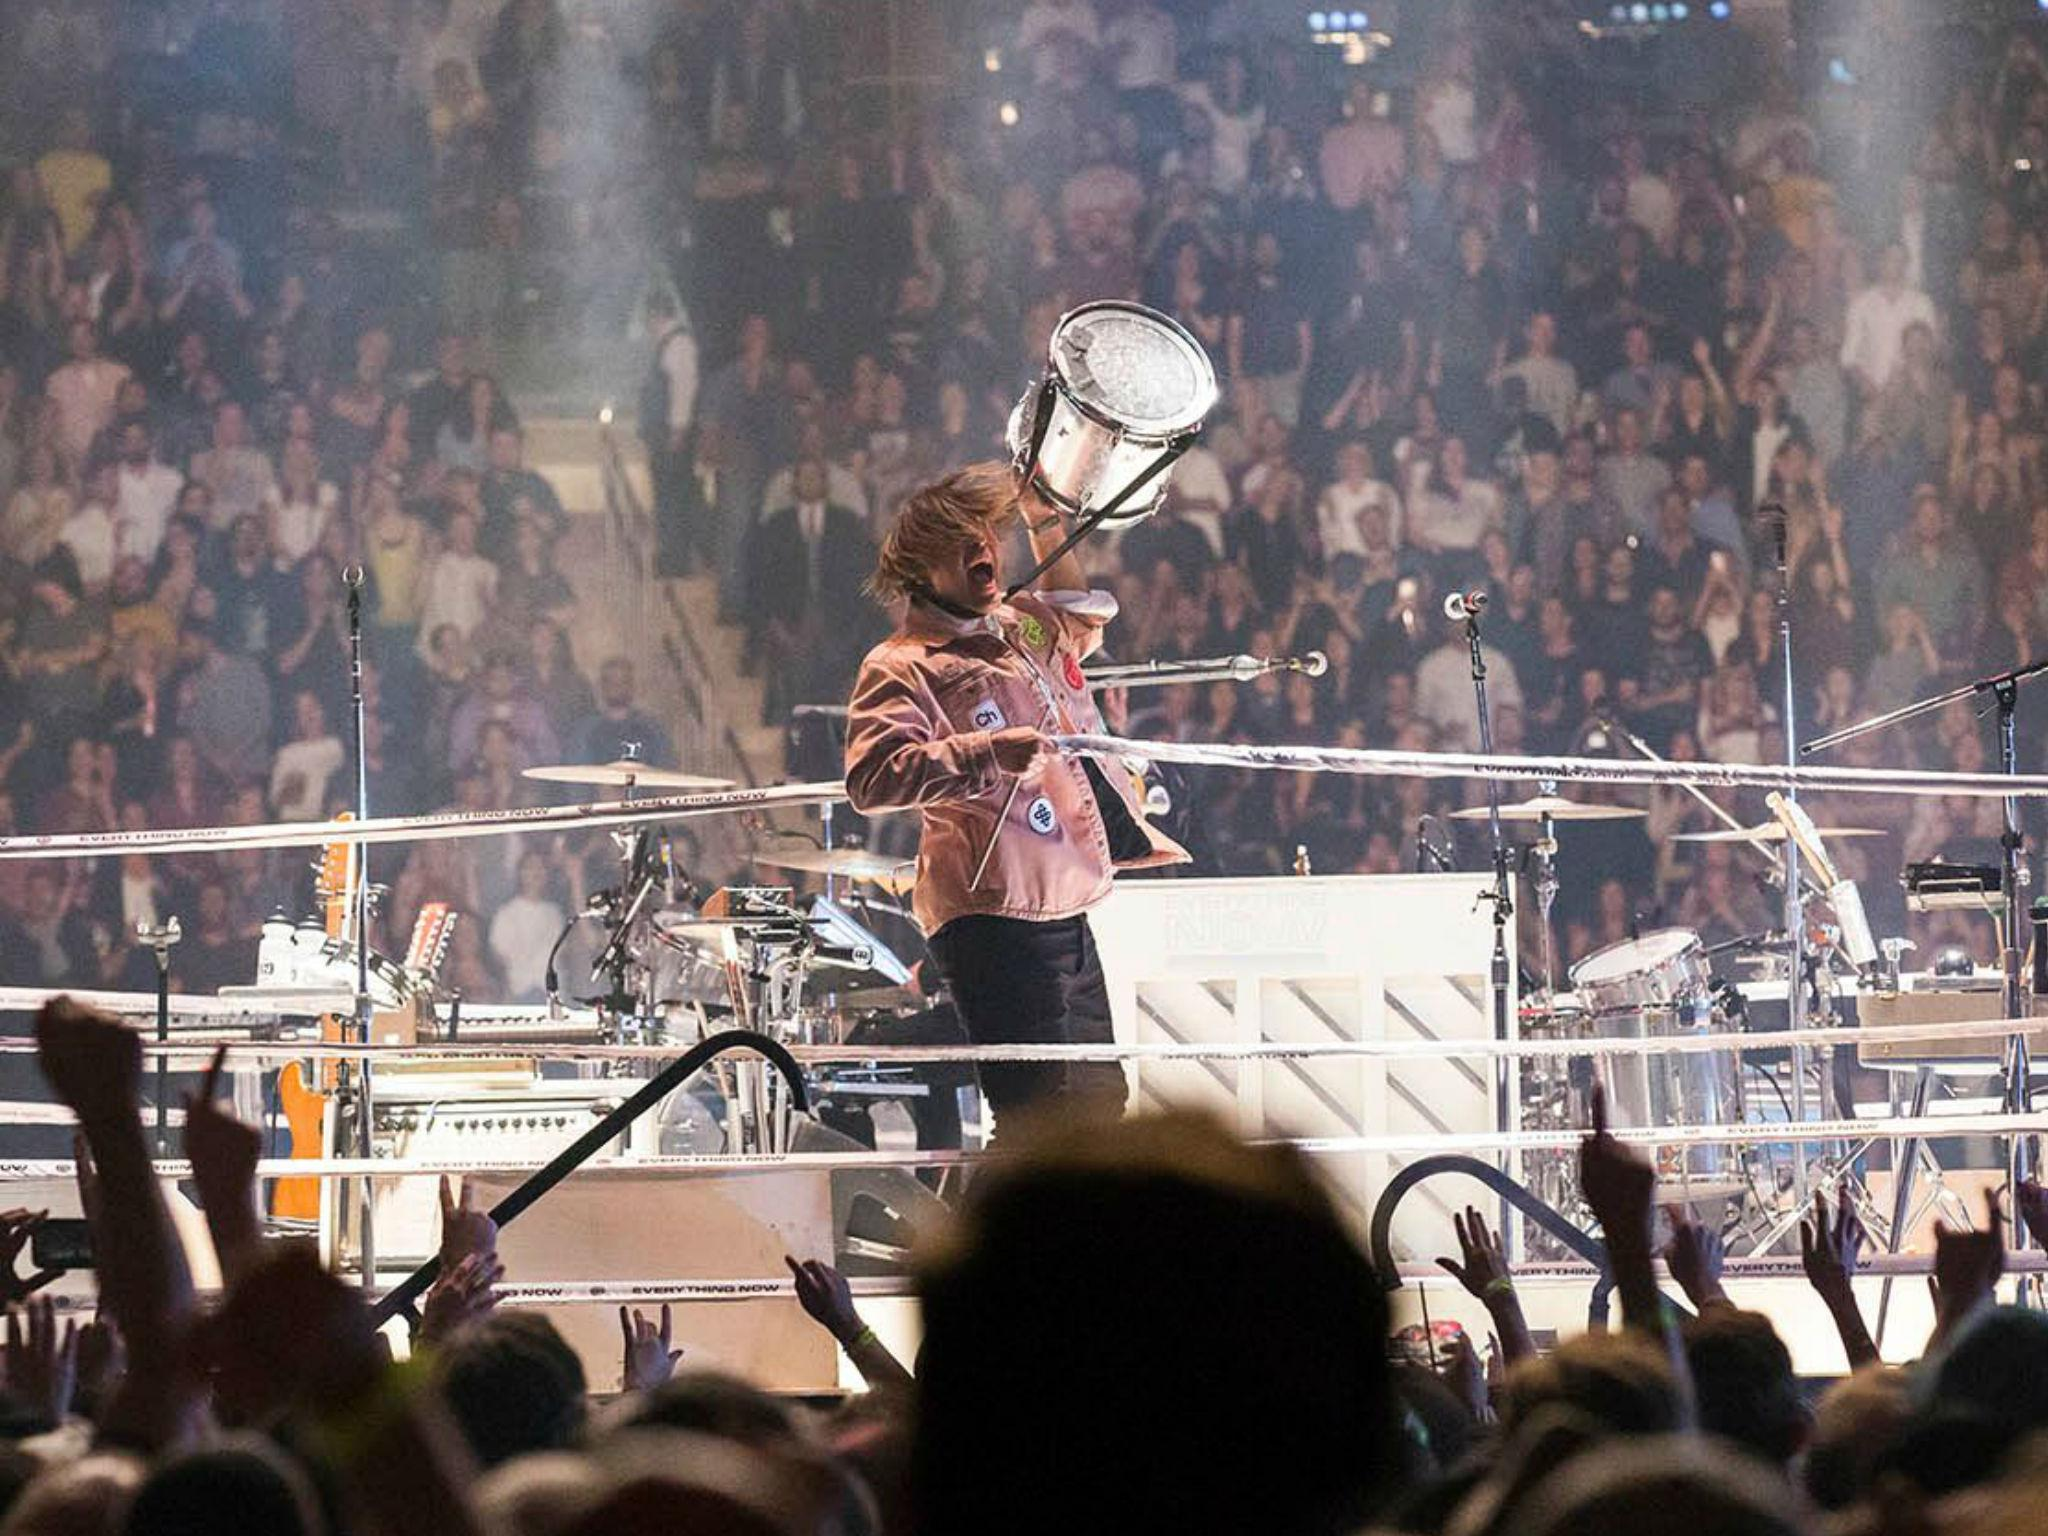 Arcade fire madison square garden review irony sincerity whatever it all sounds amazing for Arcade fire madison square garden